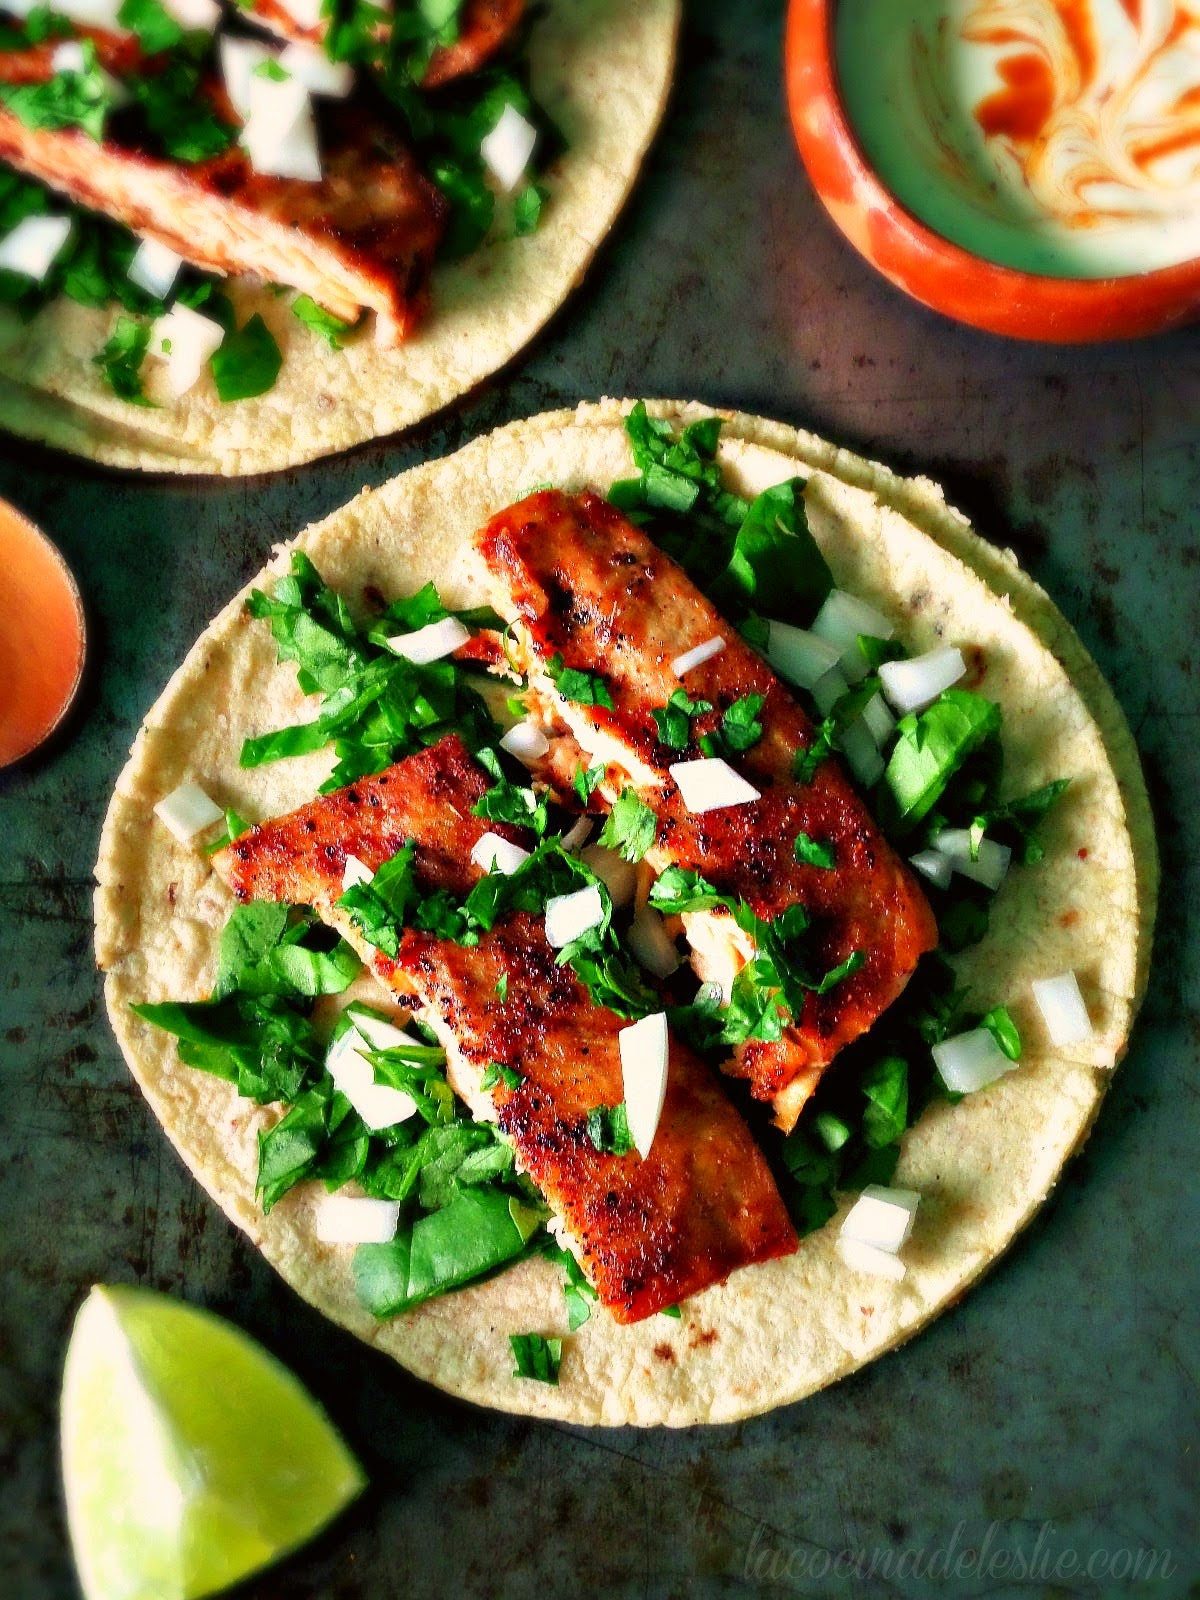 Most Popular: Spicy Salmon & Spinach Tacos from La Cocina de Leslie #recipe #SecretRecipeClub